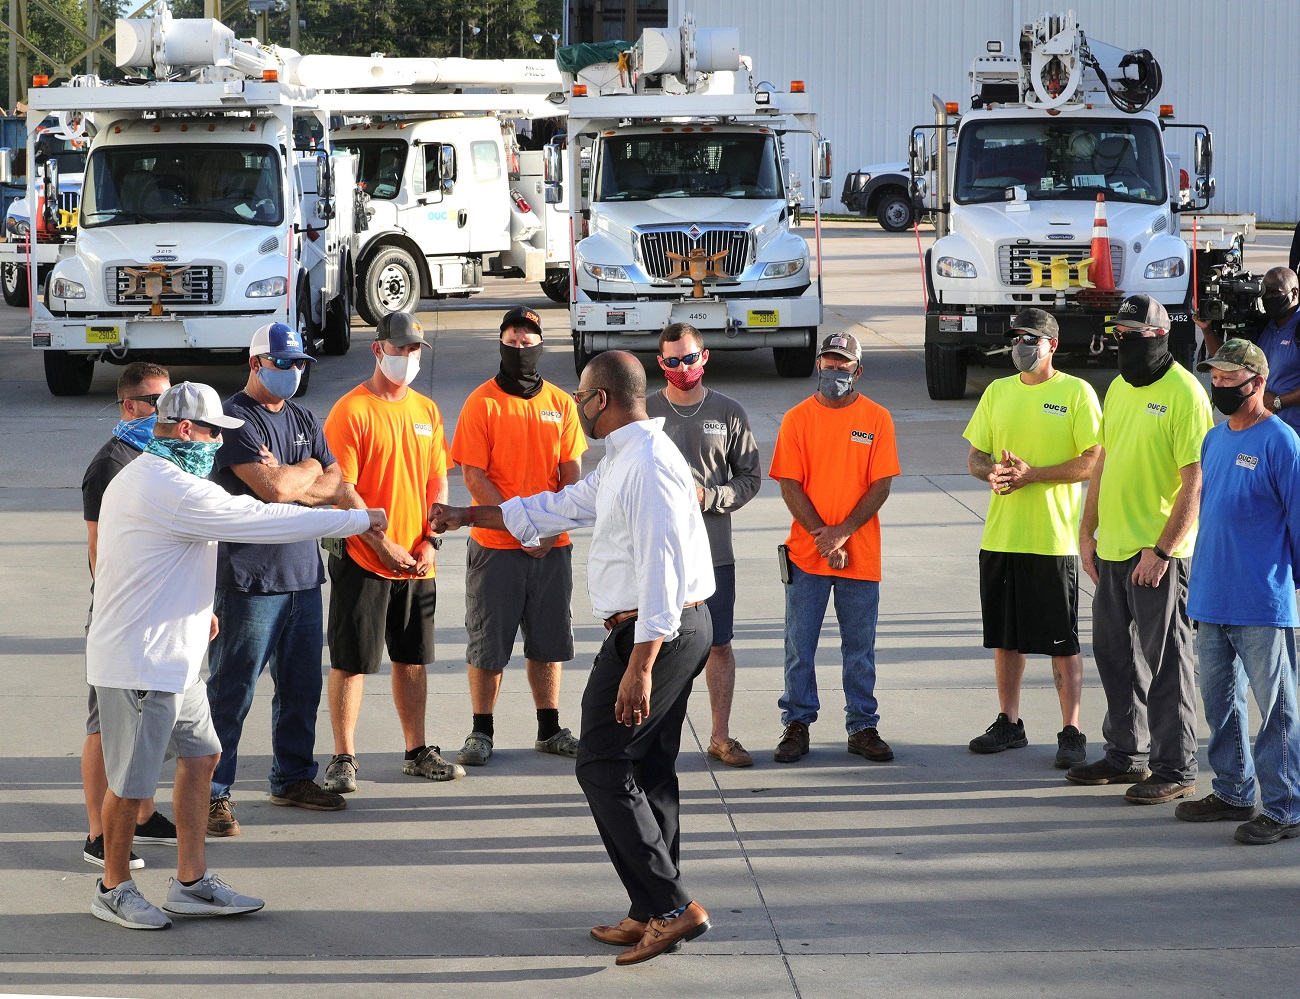 Orlando Utilities Commission vice president LeMoyne Adams, center, thanks lineworkers during a meeting before their departure from OUC's Pershing Operations Center in Orlando, Fla. for Lafayette, La., Thursday, Aug. 27, 2020. A dozen OUC workers volunteered to assist with power restoration efforts in the wake of the devastation from Hurricane Laura that struck the Louisiana coastline Thursday morning. The lineworkers will join up with other municipal utilities from across the U.S. as a part of a coordinated mutual aid response to the category 4 hurricane. (Photo by Joe Burbank/Orlando Sentinel/TNS/Sipa USA) No Use UK. No Use Germany.